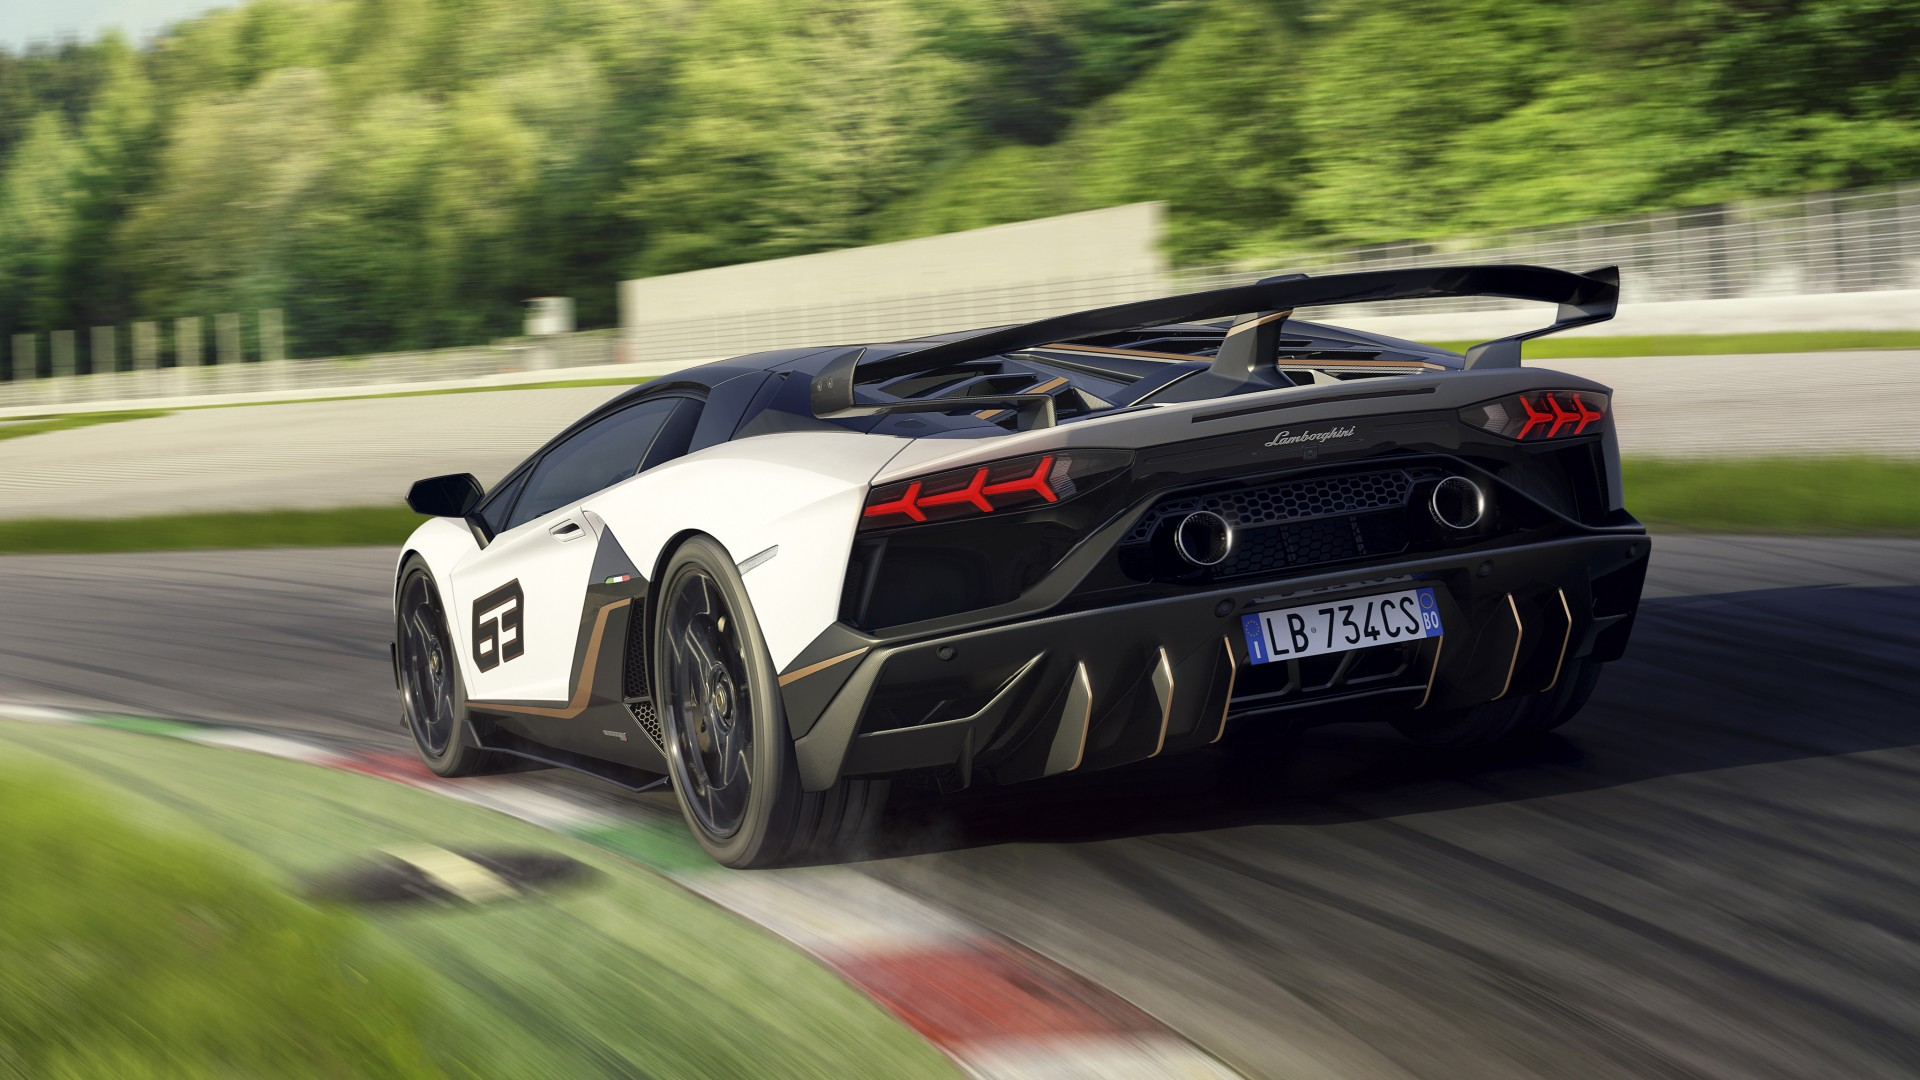 Lamborghini Aventador SVJ 63 2019 4K 8 Wallpaper | HD Car ...